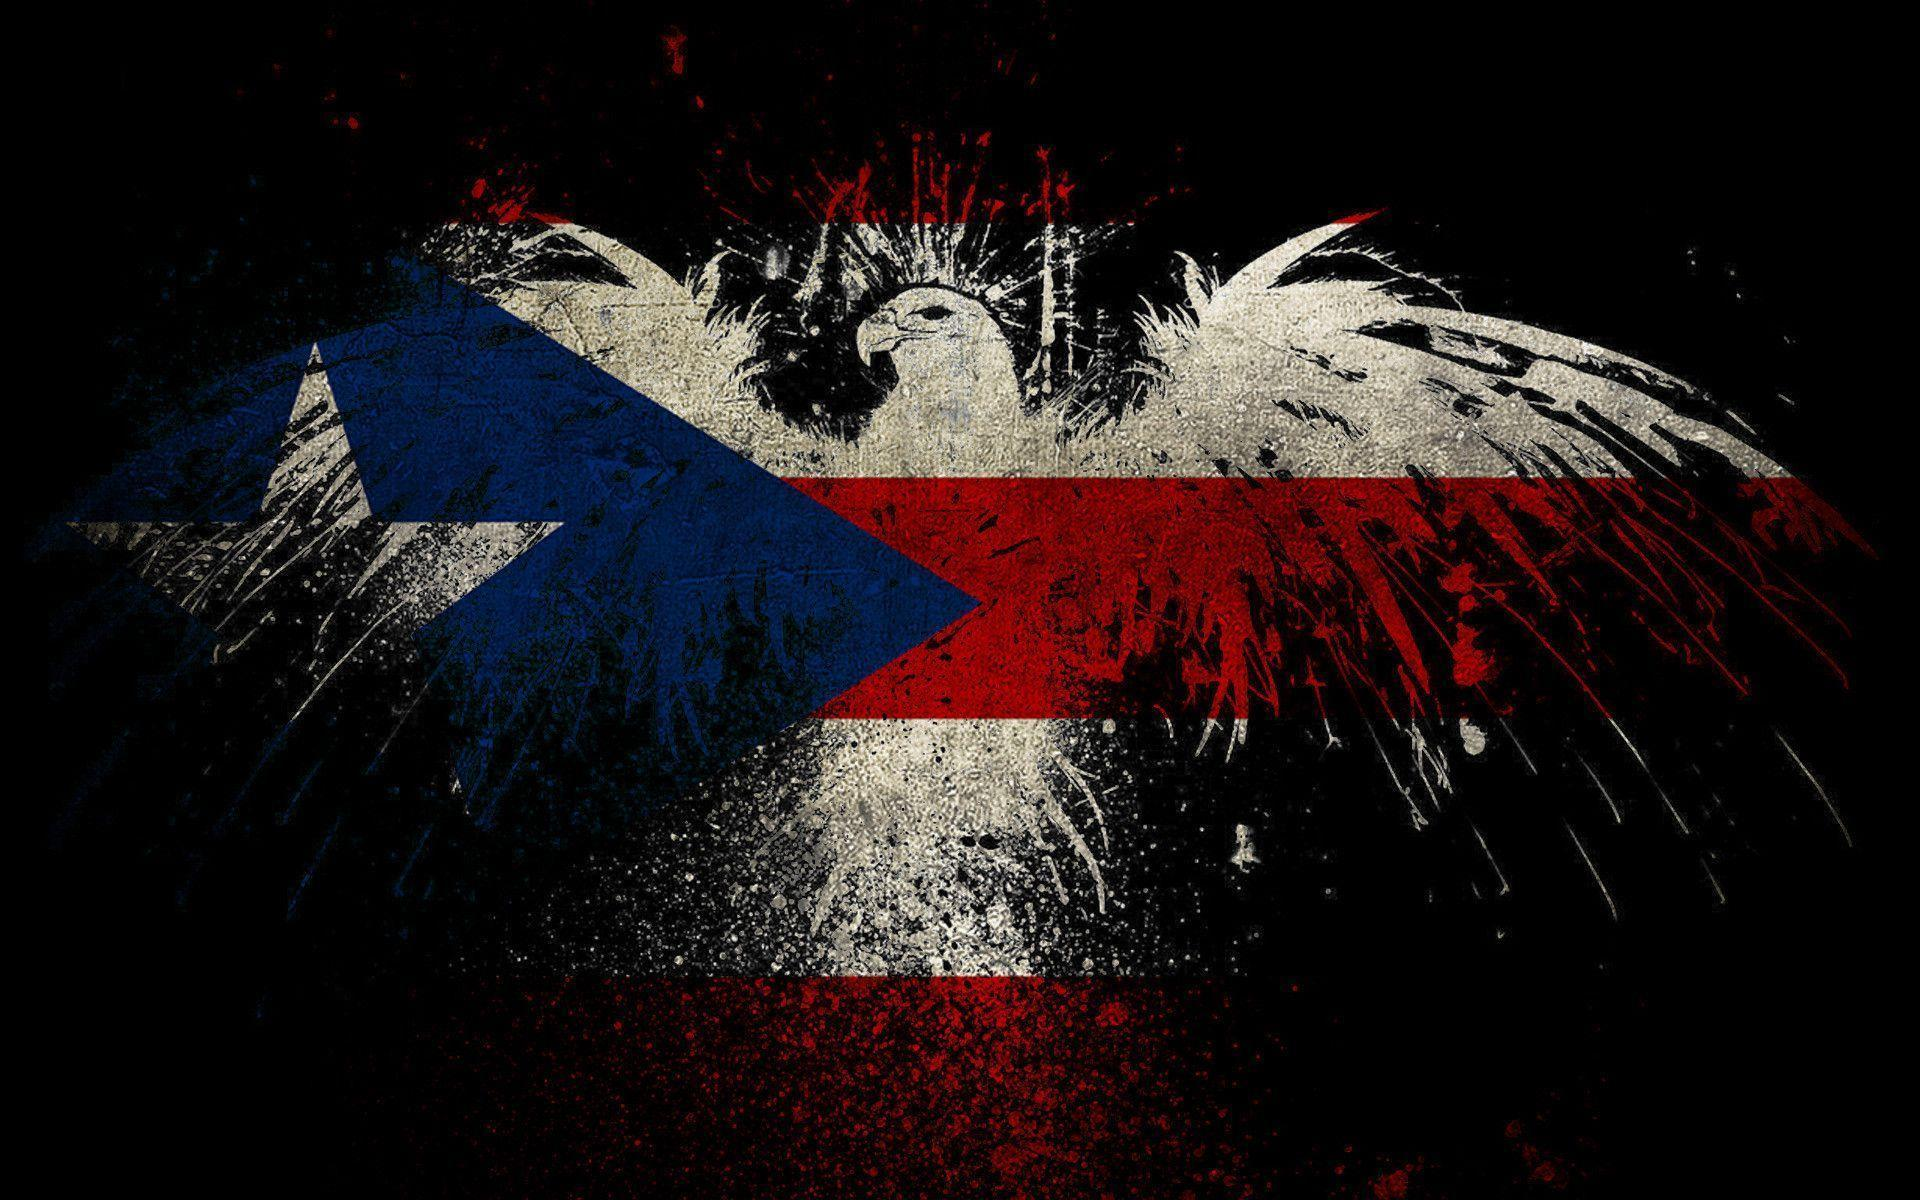 Download Free Puerto Rico Backgrounds: Puerto Rico Wallpapers Free